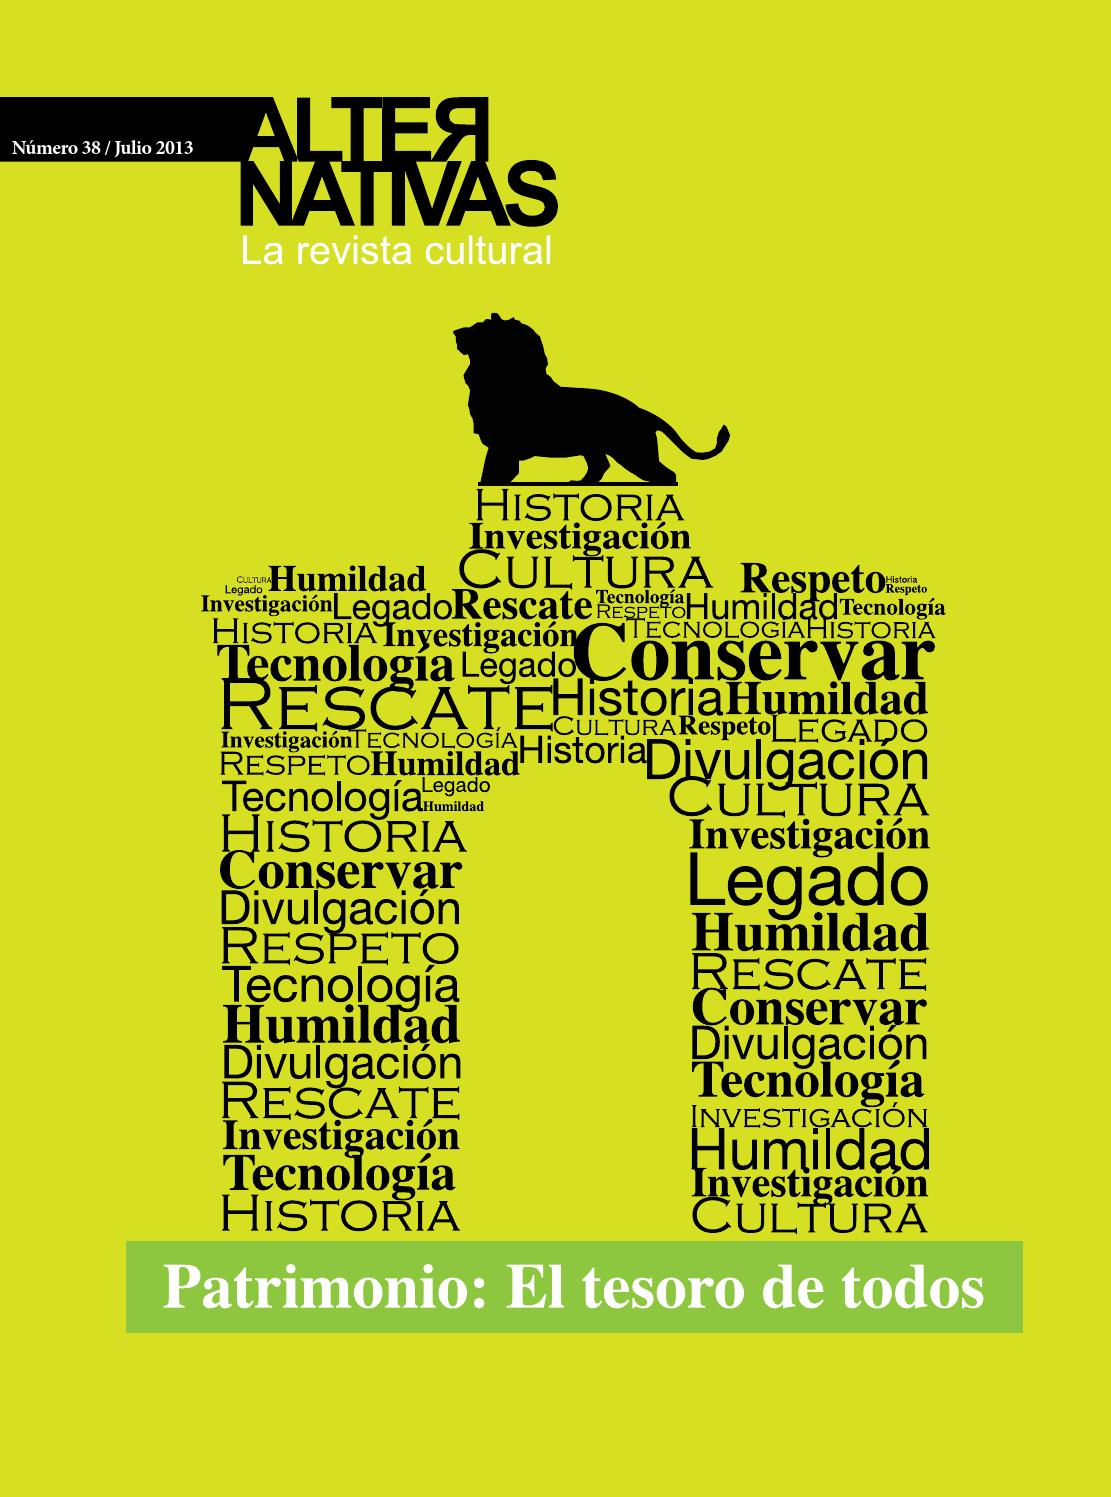 Revista Cultural Alternativas N38 Julio 2013 By Revista Cultural  # Muebles Umbe Horario